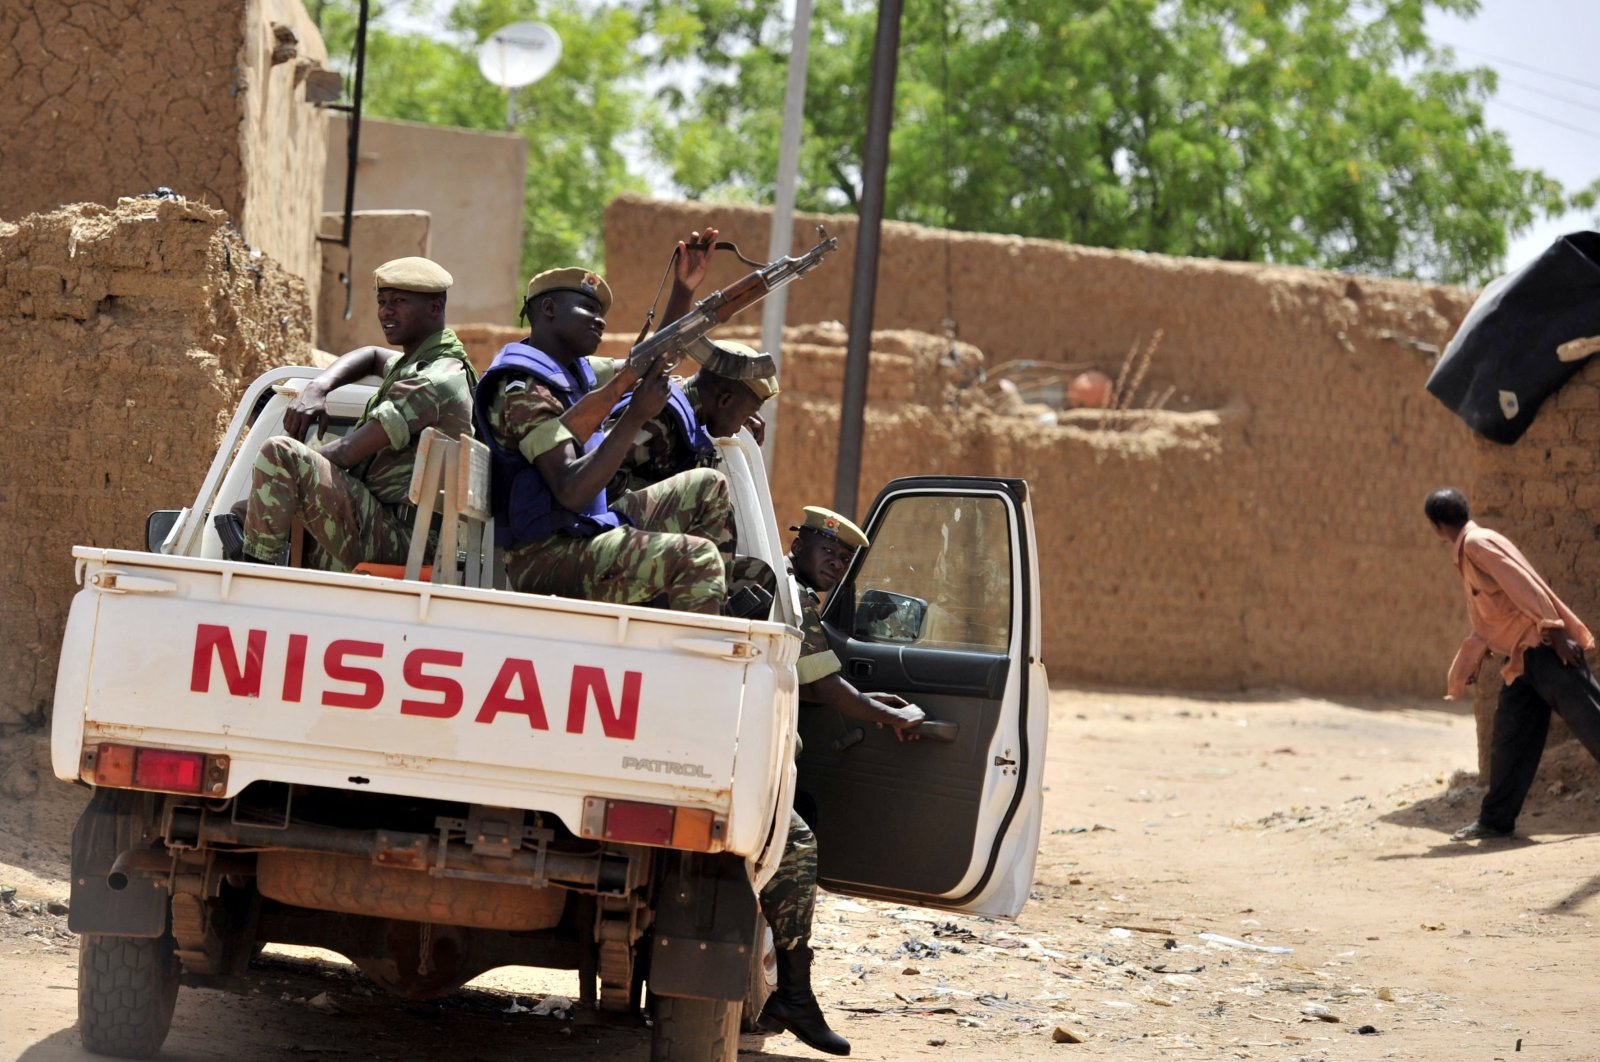 Burkinabe soldiers patrol in a pick-up truck in Gorom-Gorom, northern Burkina Faso, June 27, 2012. (AFP Photo)